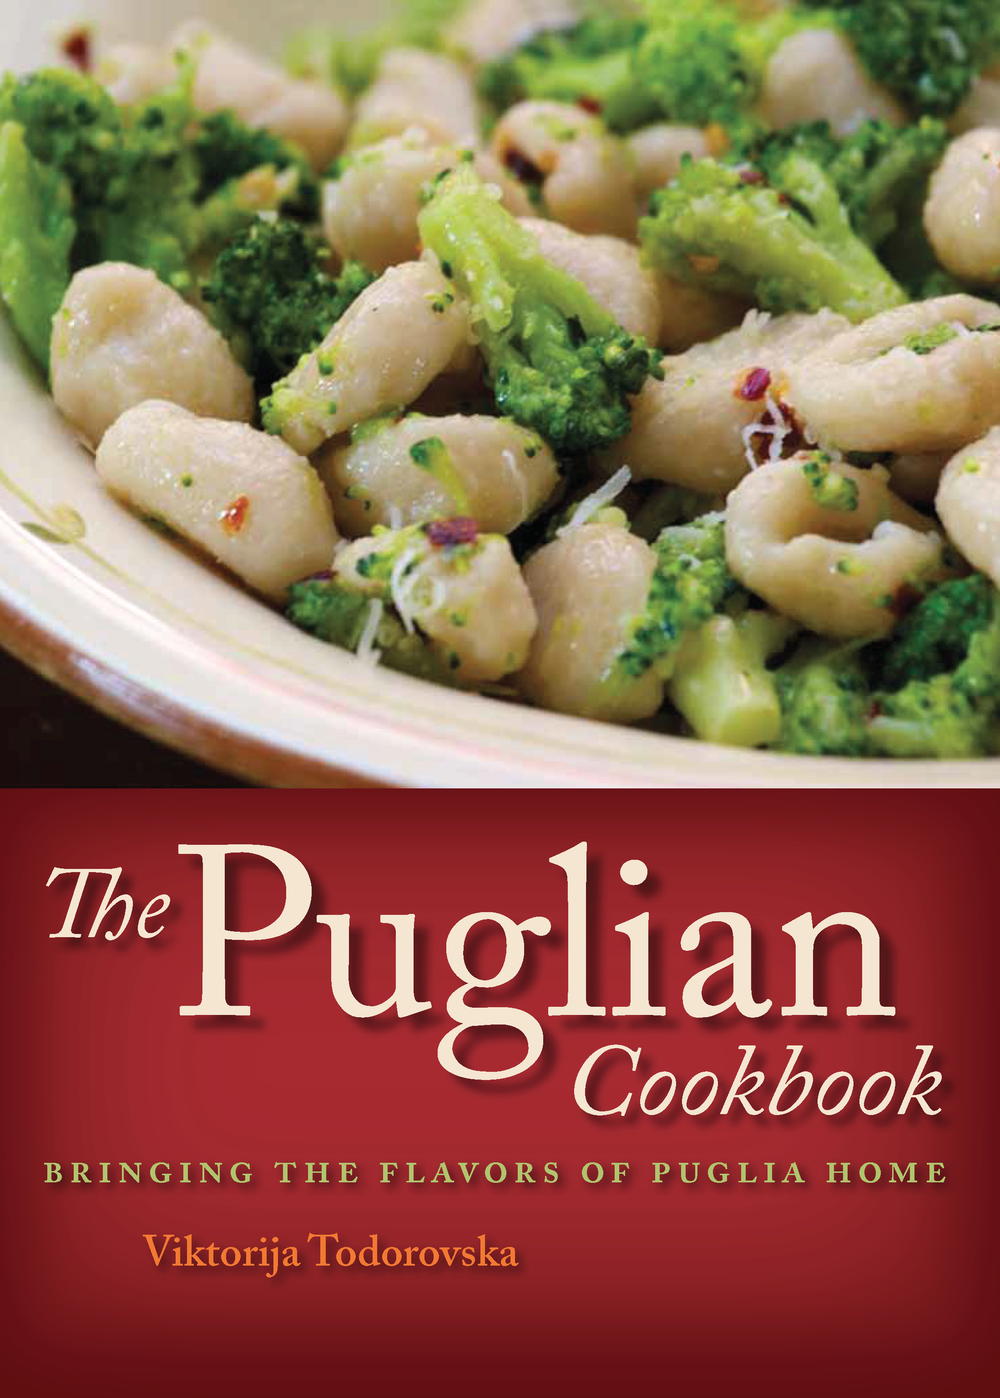 Puglian Cookbook_Page_01.png